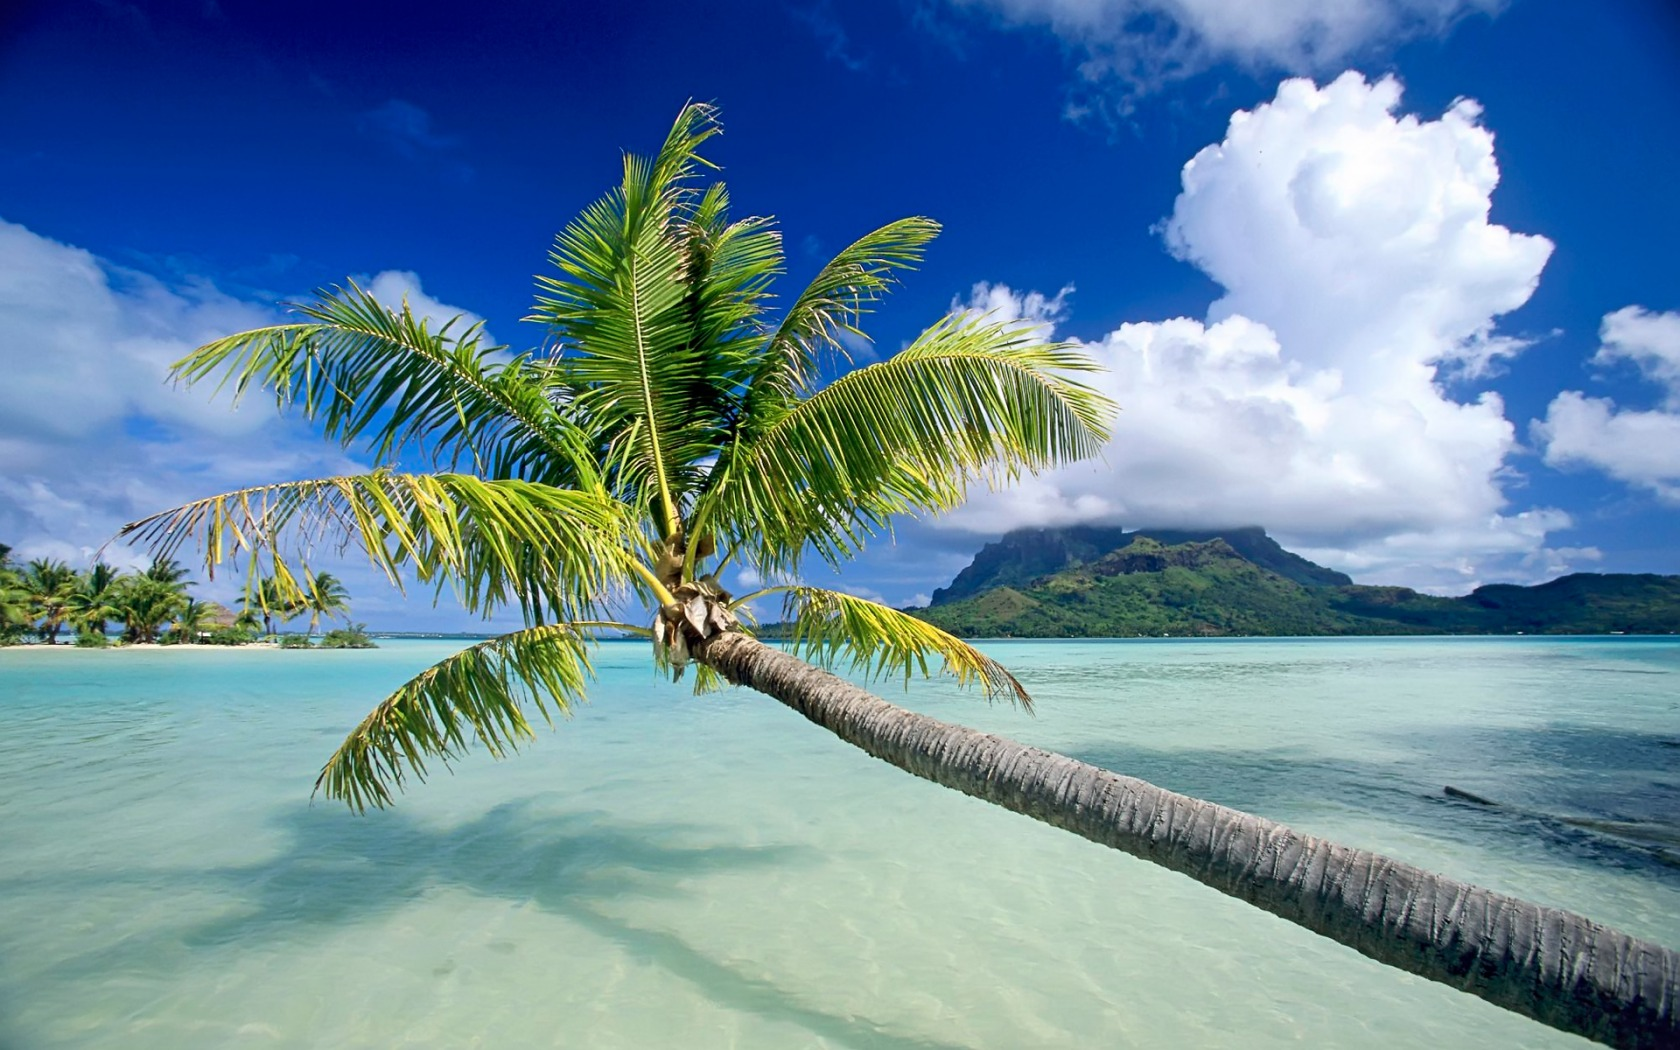 The 15 Best Tropical Beaches In The World | Bora bora, Bora bora ...